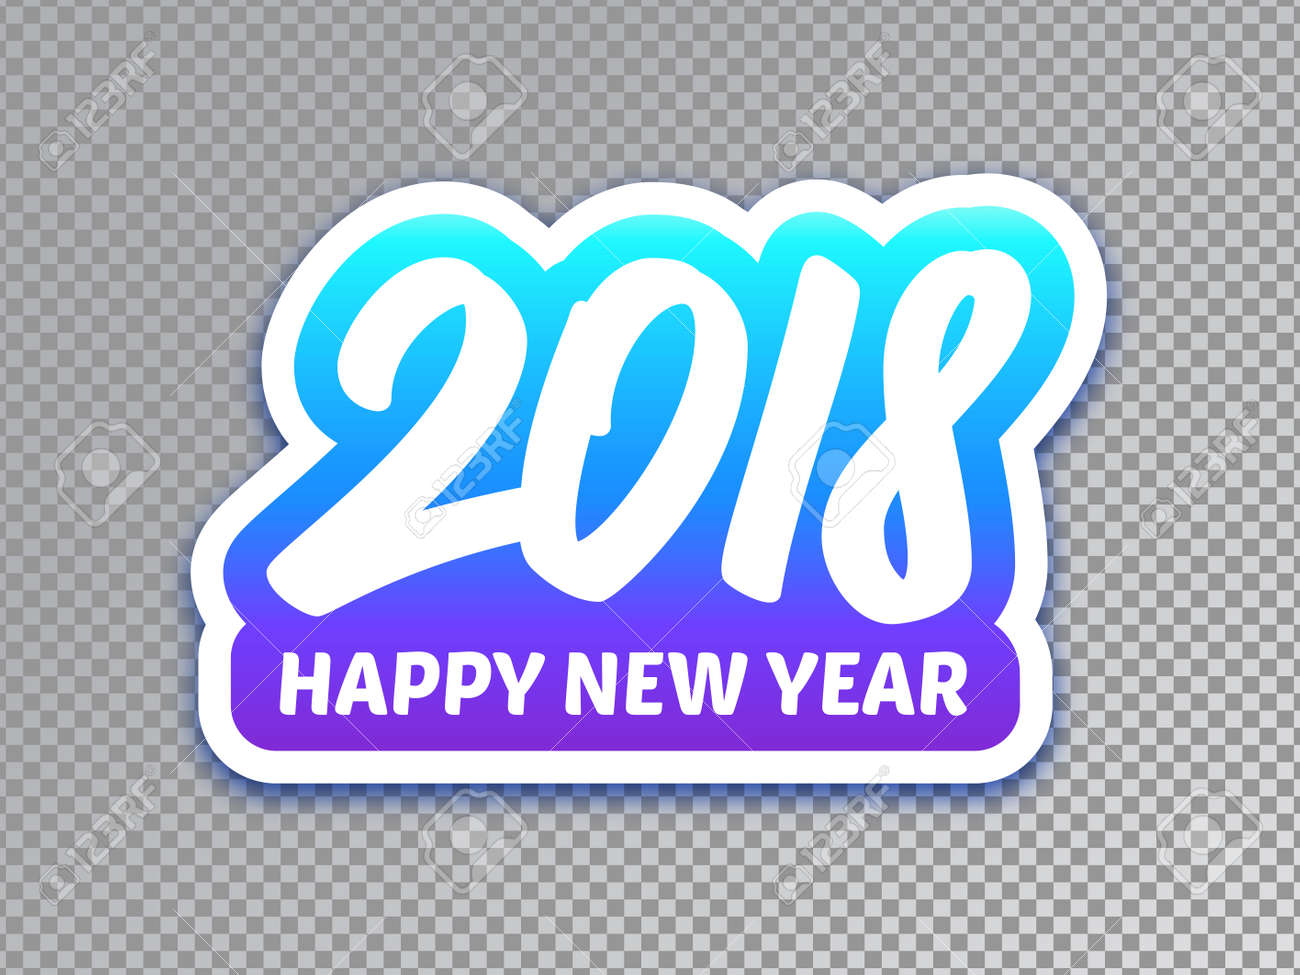 happy new year 2018 paper banner with typography on transparent background vector carving art style